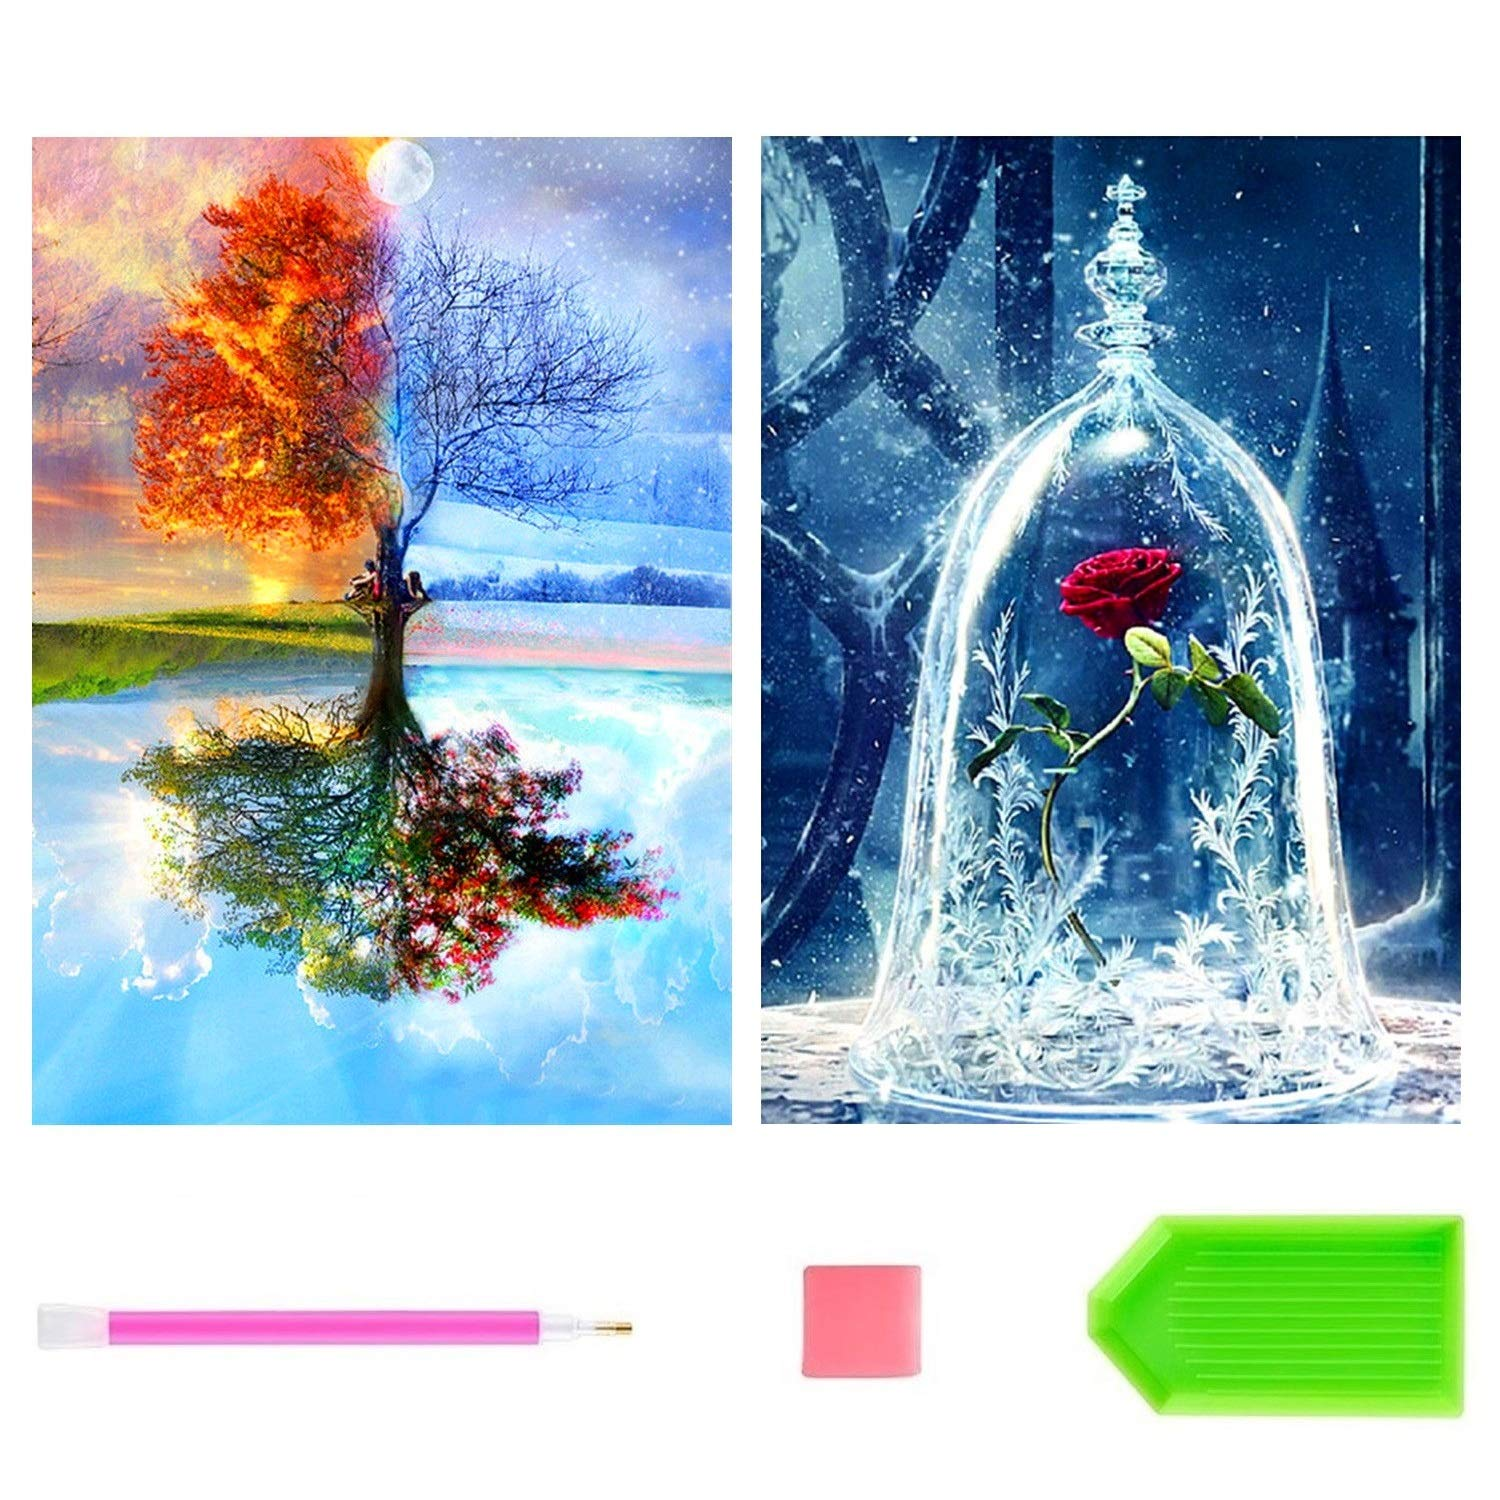 Diamond Painting, 2 Pack DIY Paint with Diamonds Full Drill, 5D Diamond Painting Kits for Adults, Four Seasons Tree & Rose Painting with Diamonds for Home Wall Decor by Number Kits (12X16inch)